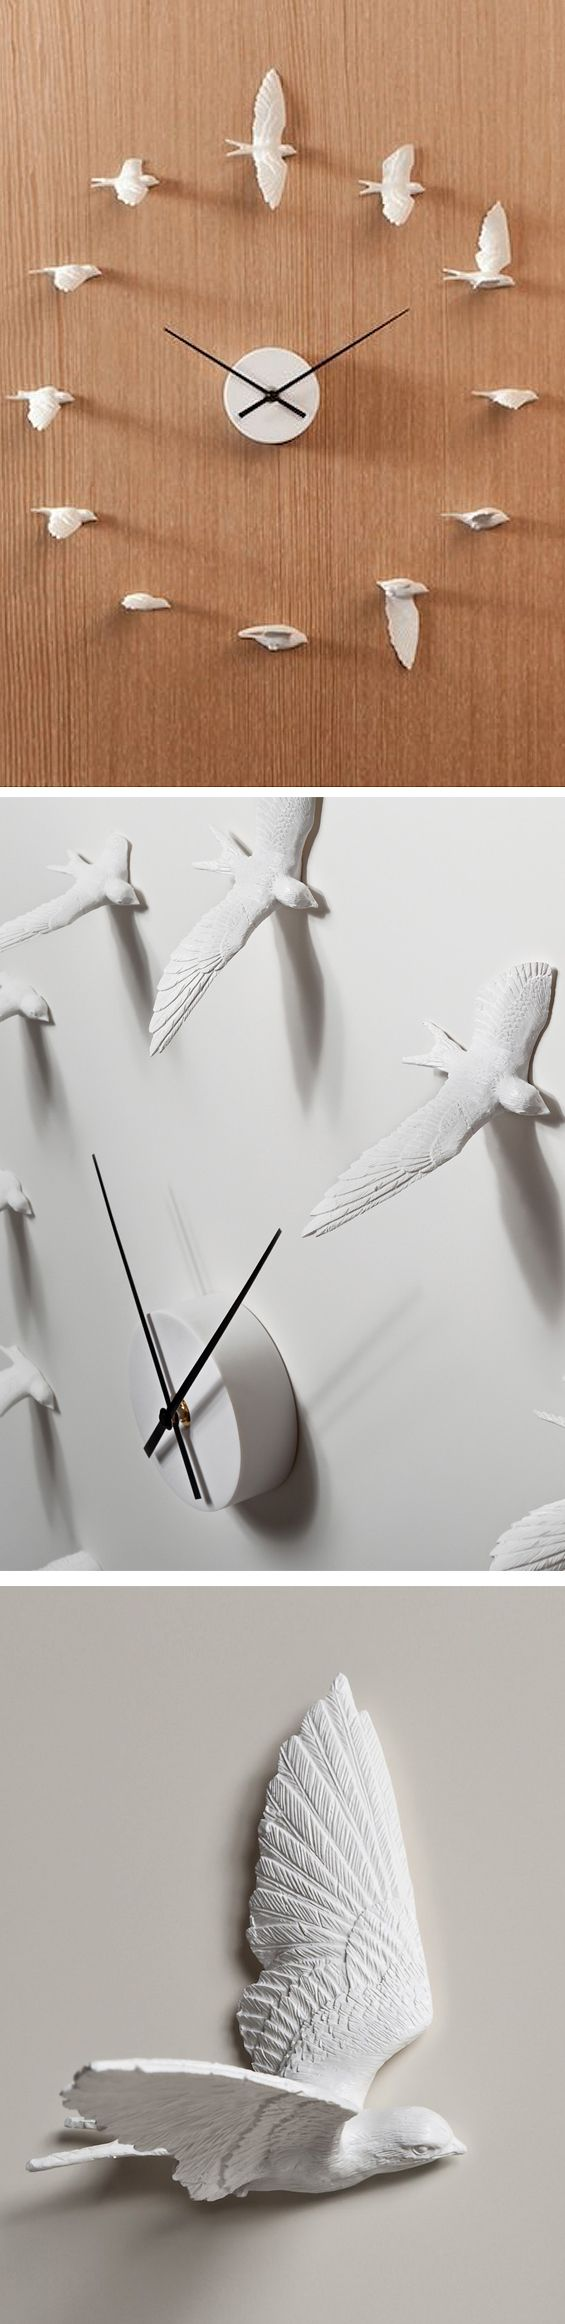 Birds In Flight Clock. Reminds me of my wedding (the lladro bird comb I wore and the cufflinks he wore)